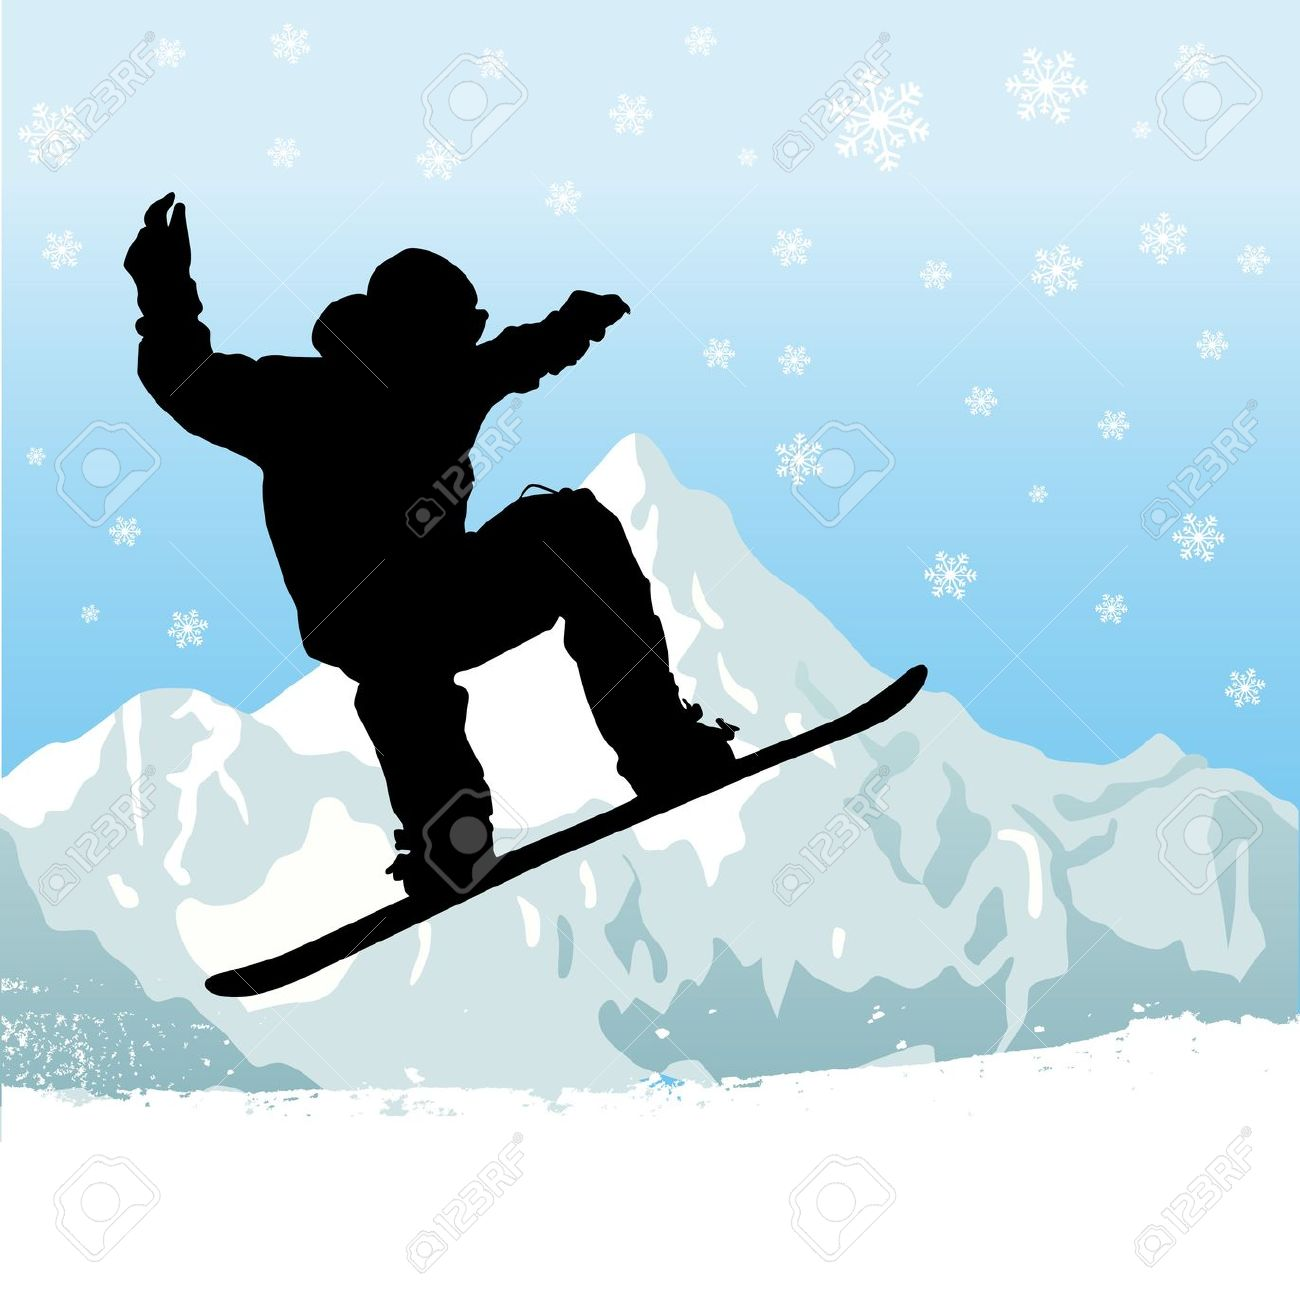 18+ Snowboarding Clipart.